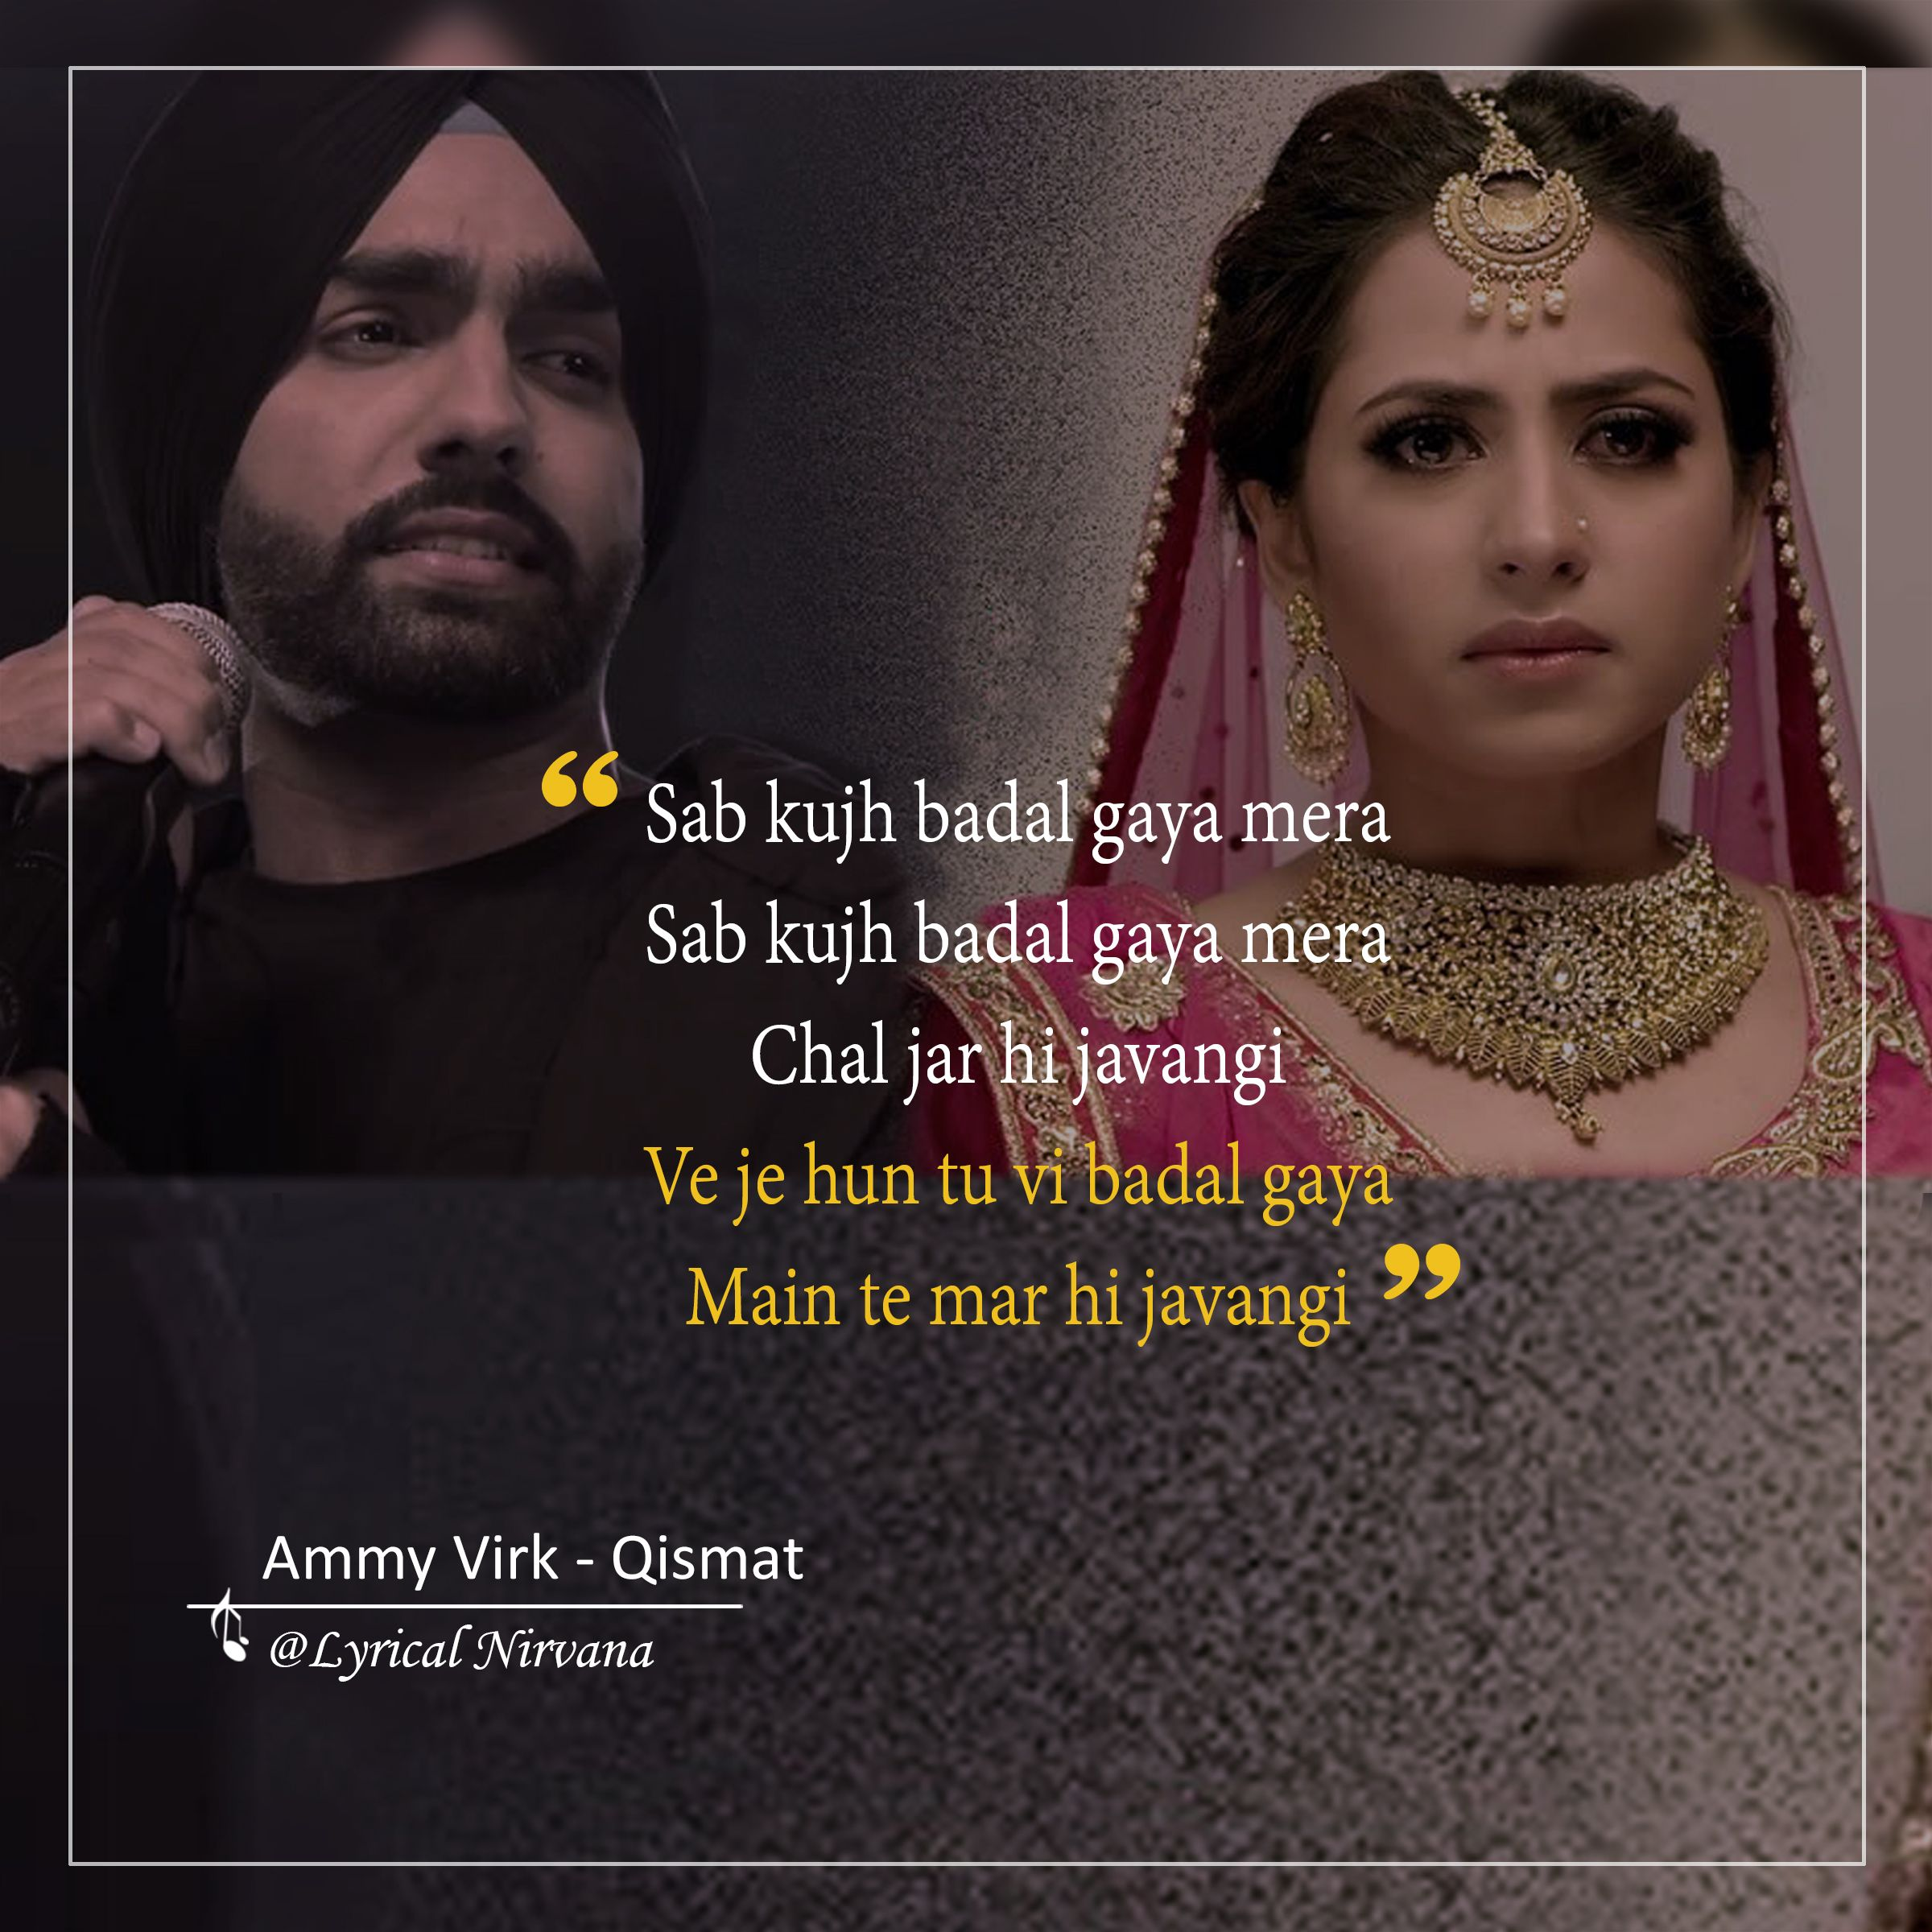 Ammy Virk - Qismat (With images)   Song lyric quotes ...